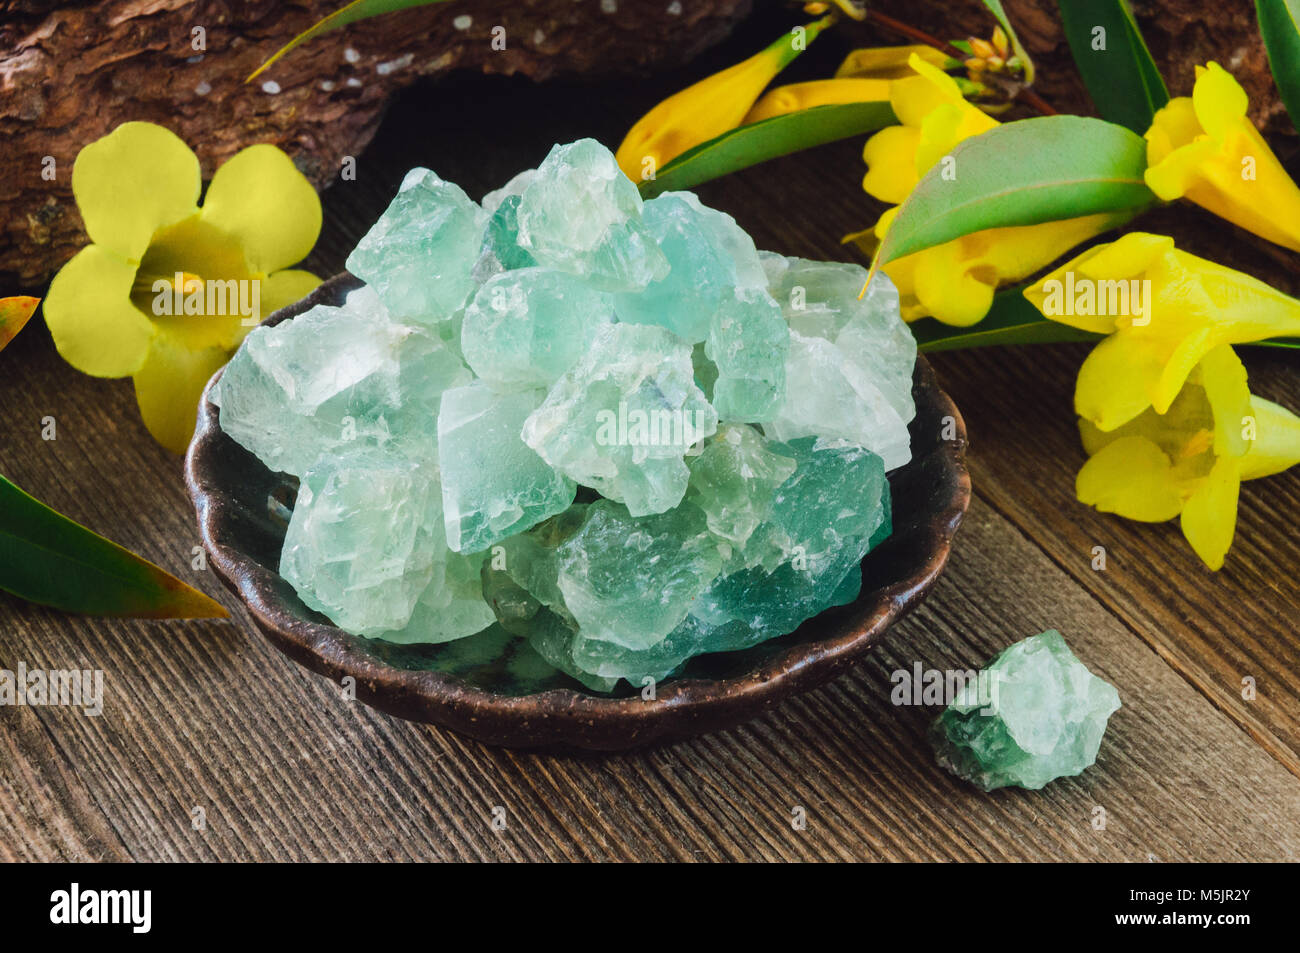 Ceramic Bowl of Rough Green Fluorite on Rustic Background - Stock Image